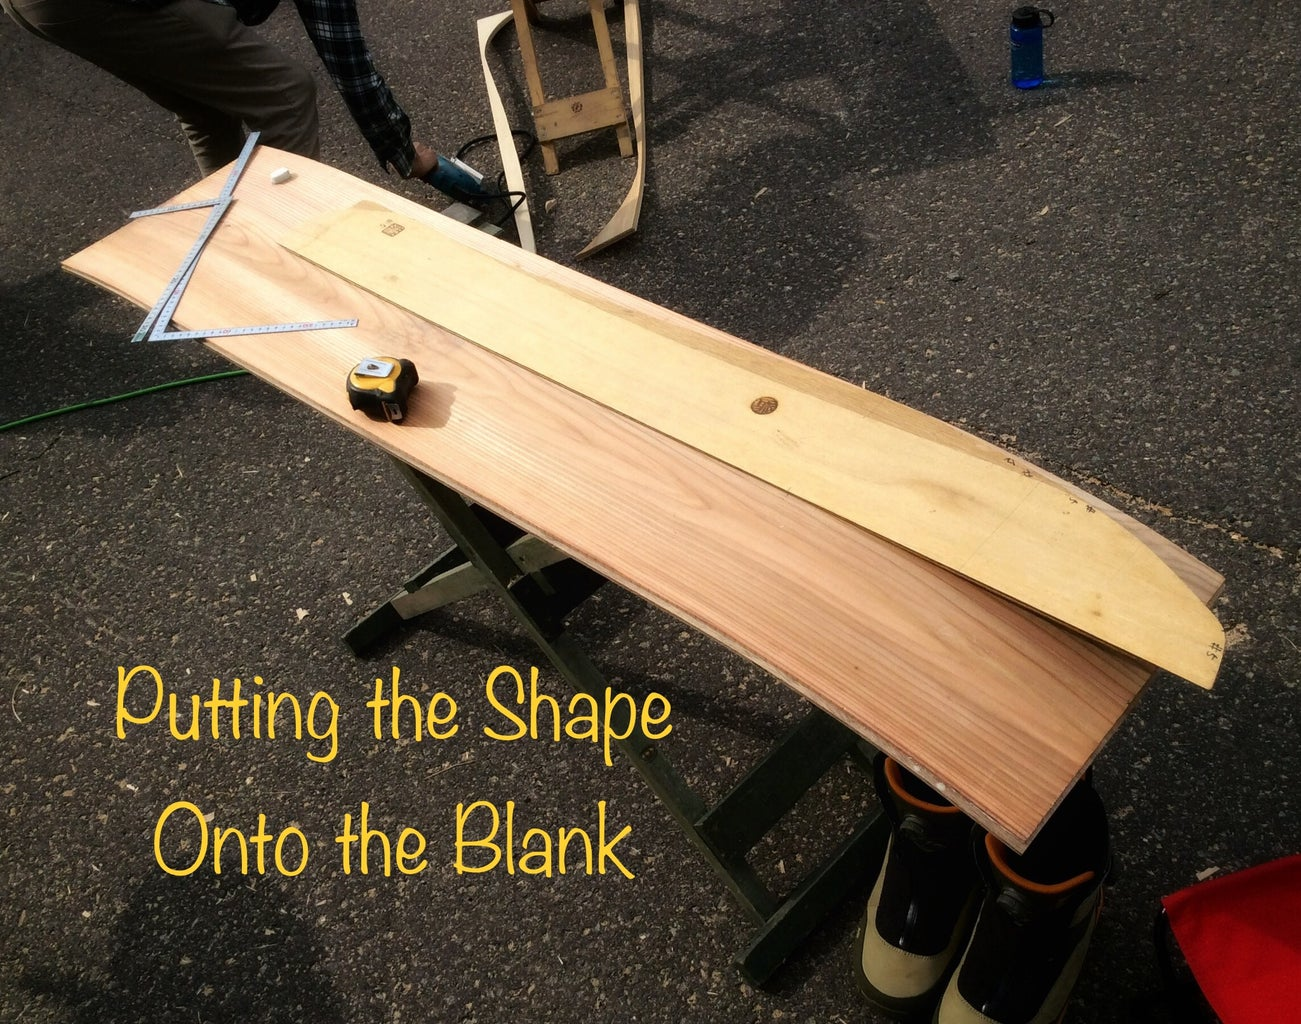 Putting the Shape Onto the Blank